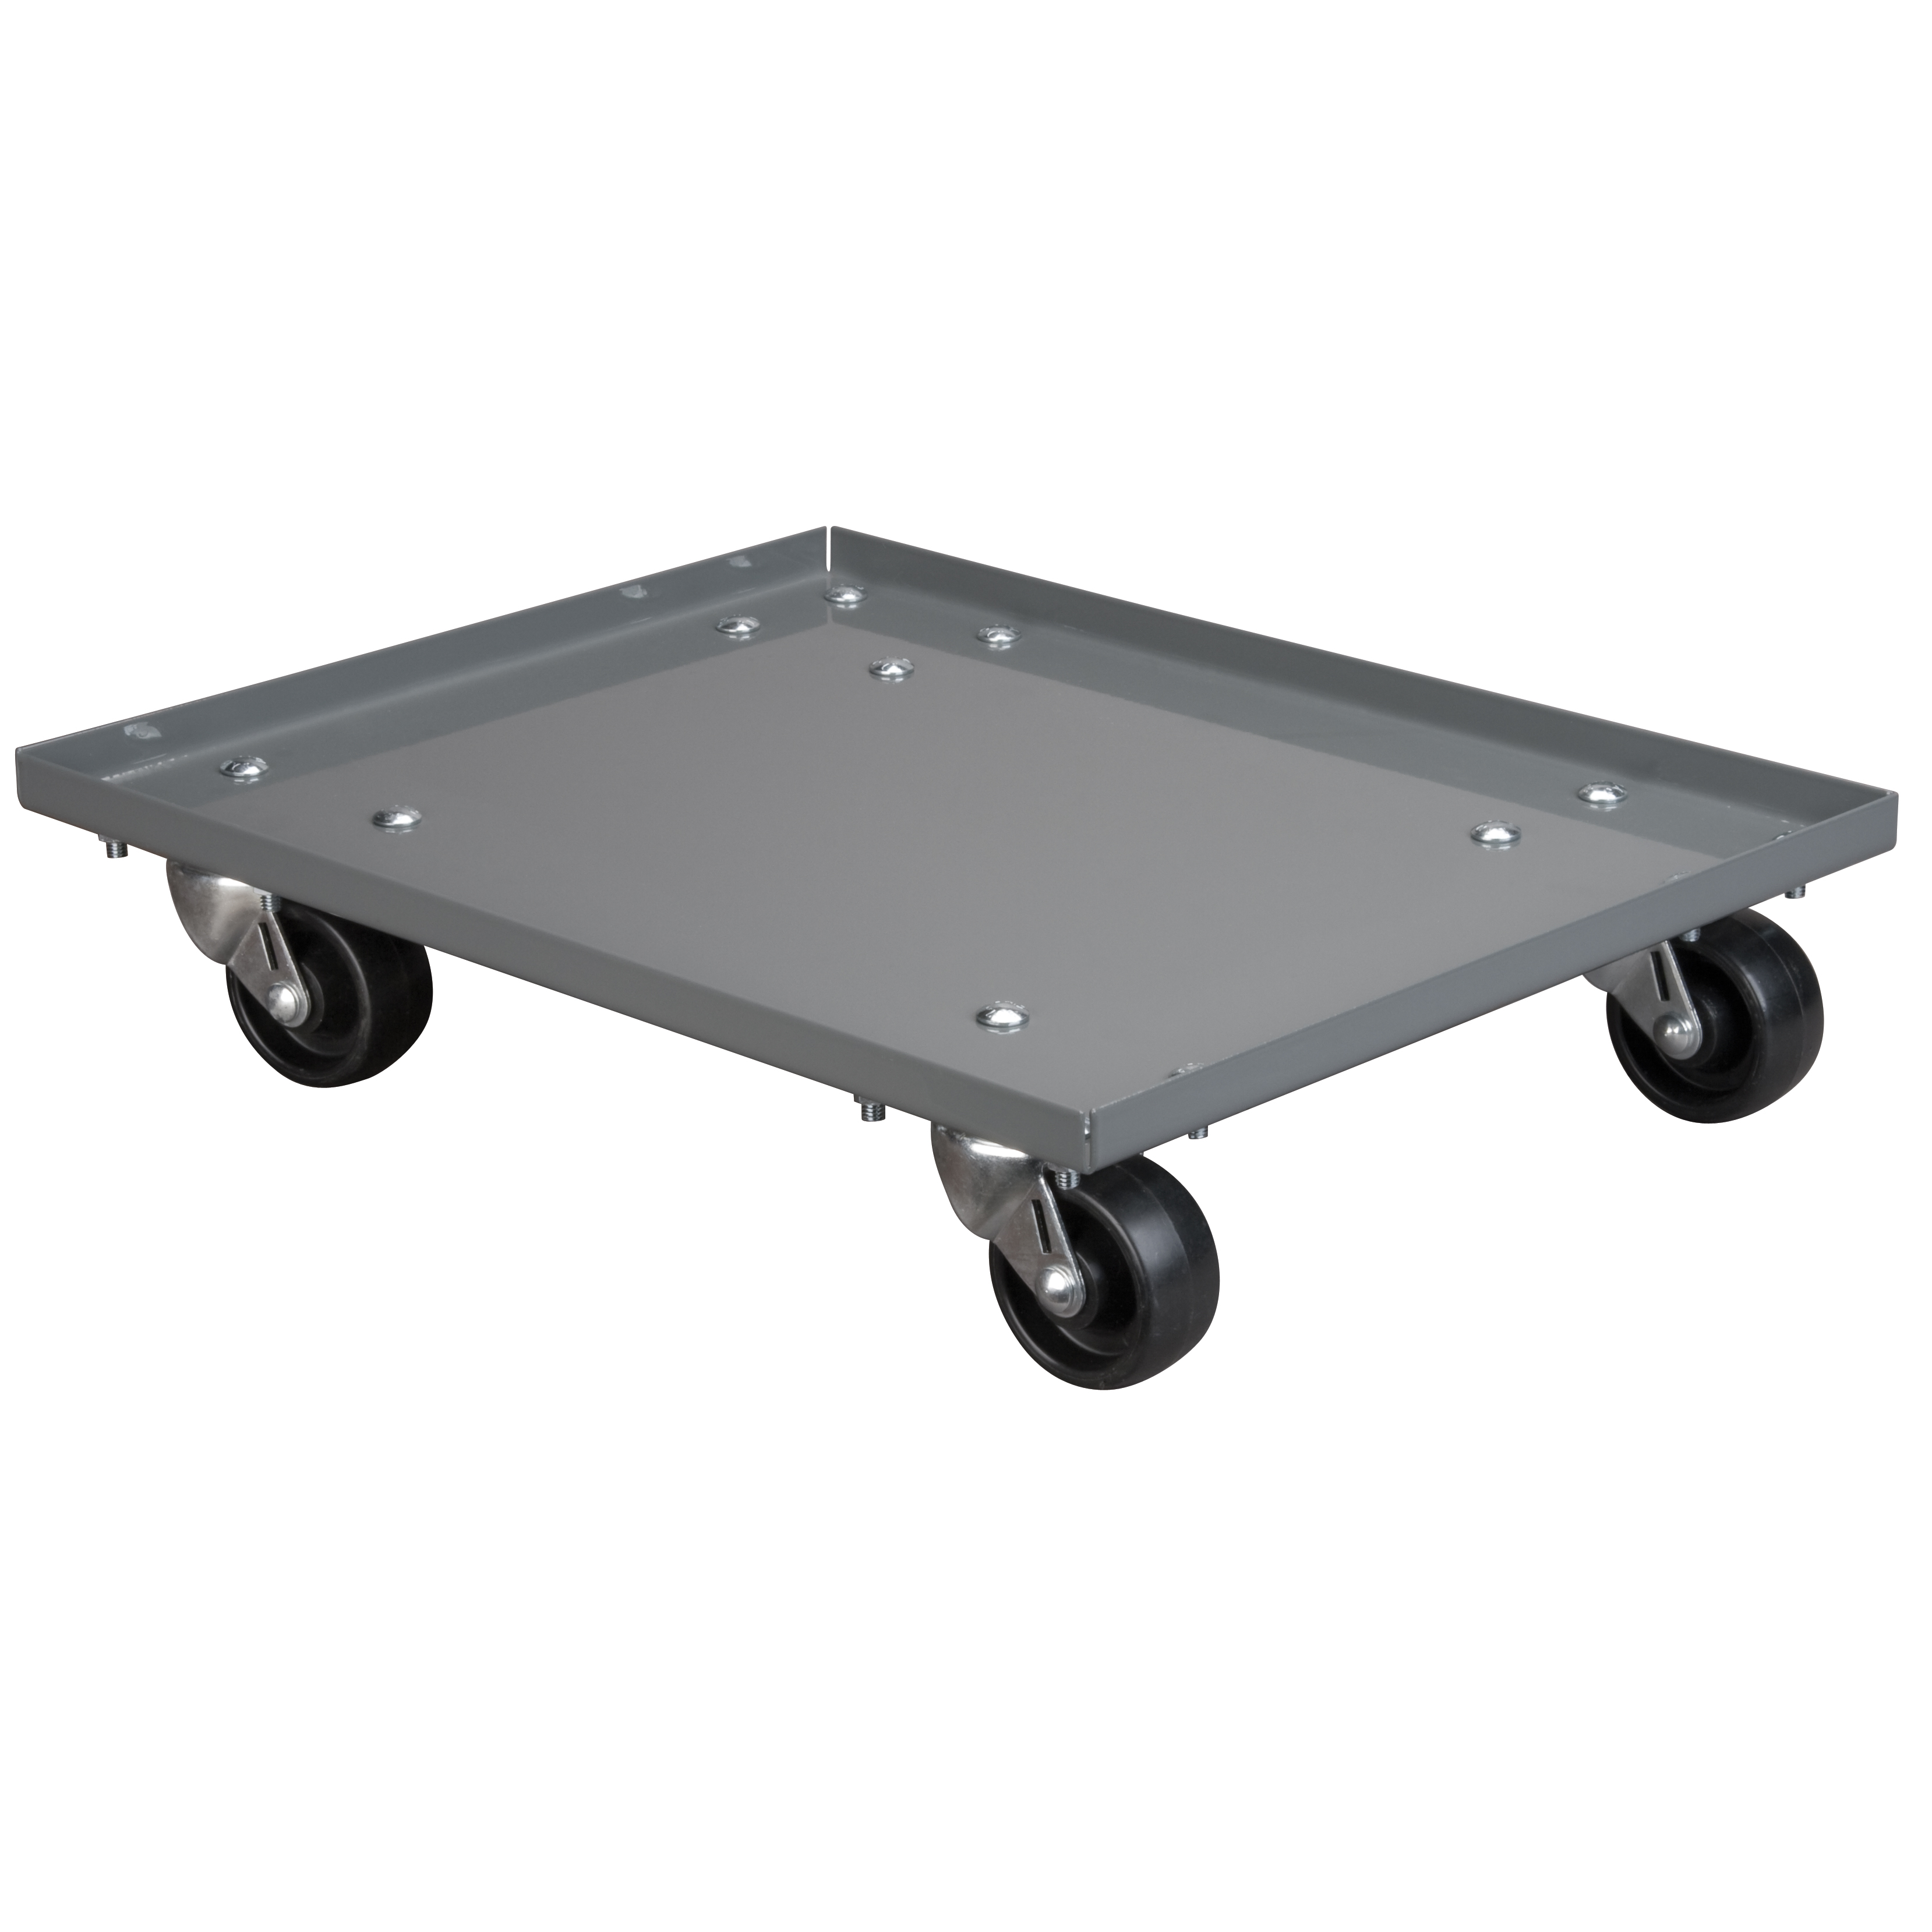 Item DISCONTINUED by Manufacturer.  Steel Dolly, 17x21, N/A3